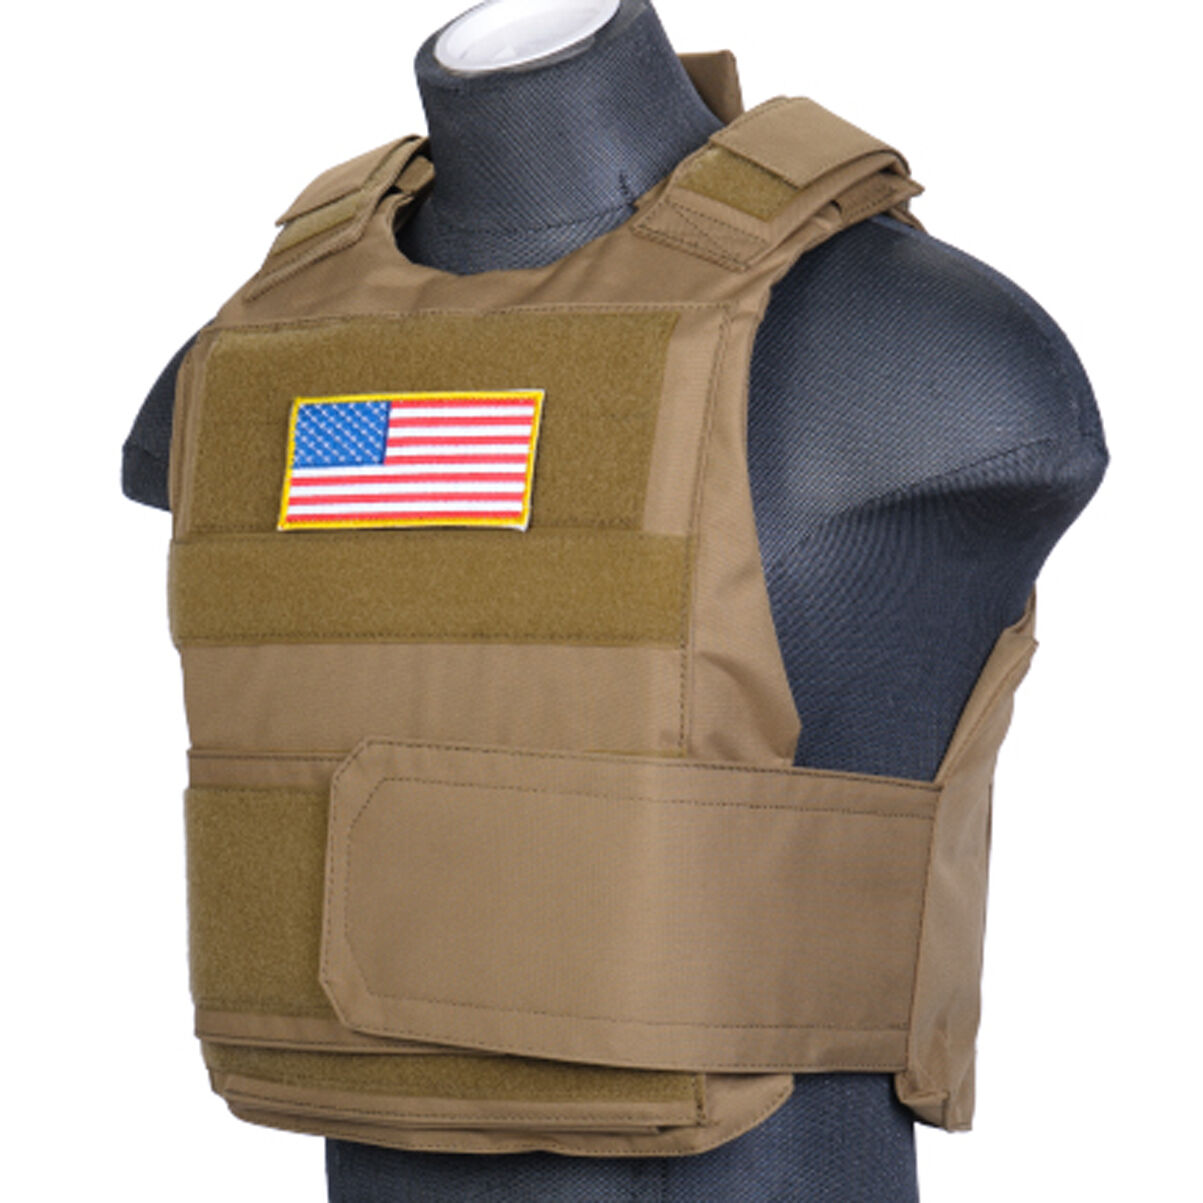 Body Armor Vest Lancer Tactical Strike Plate Carrier Airsoft SWAT team CA-302T